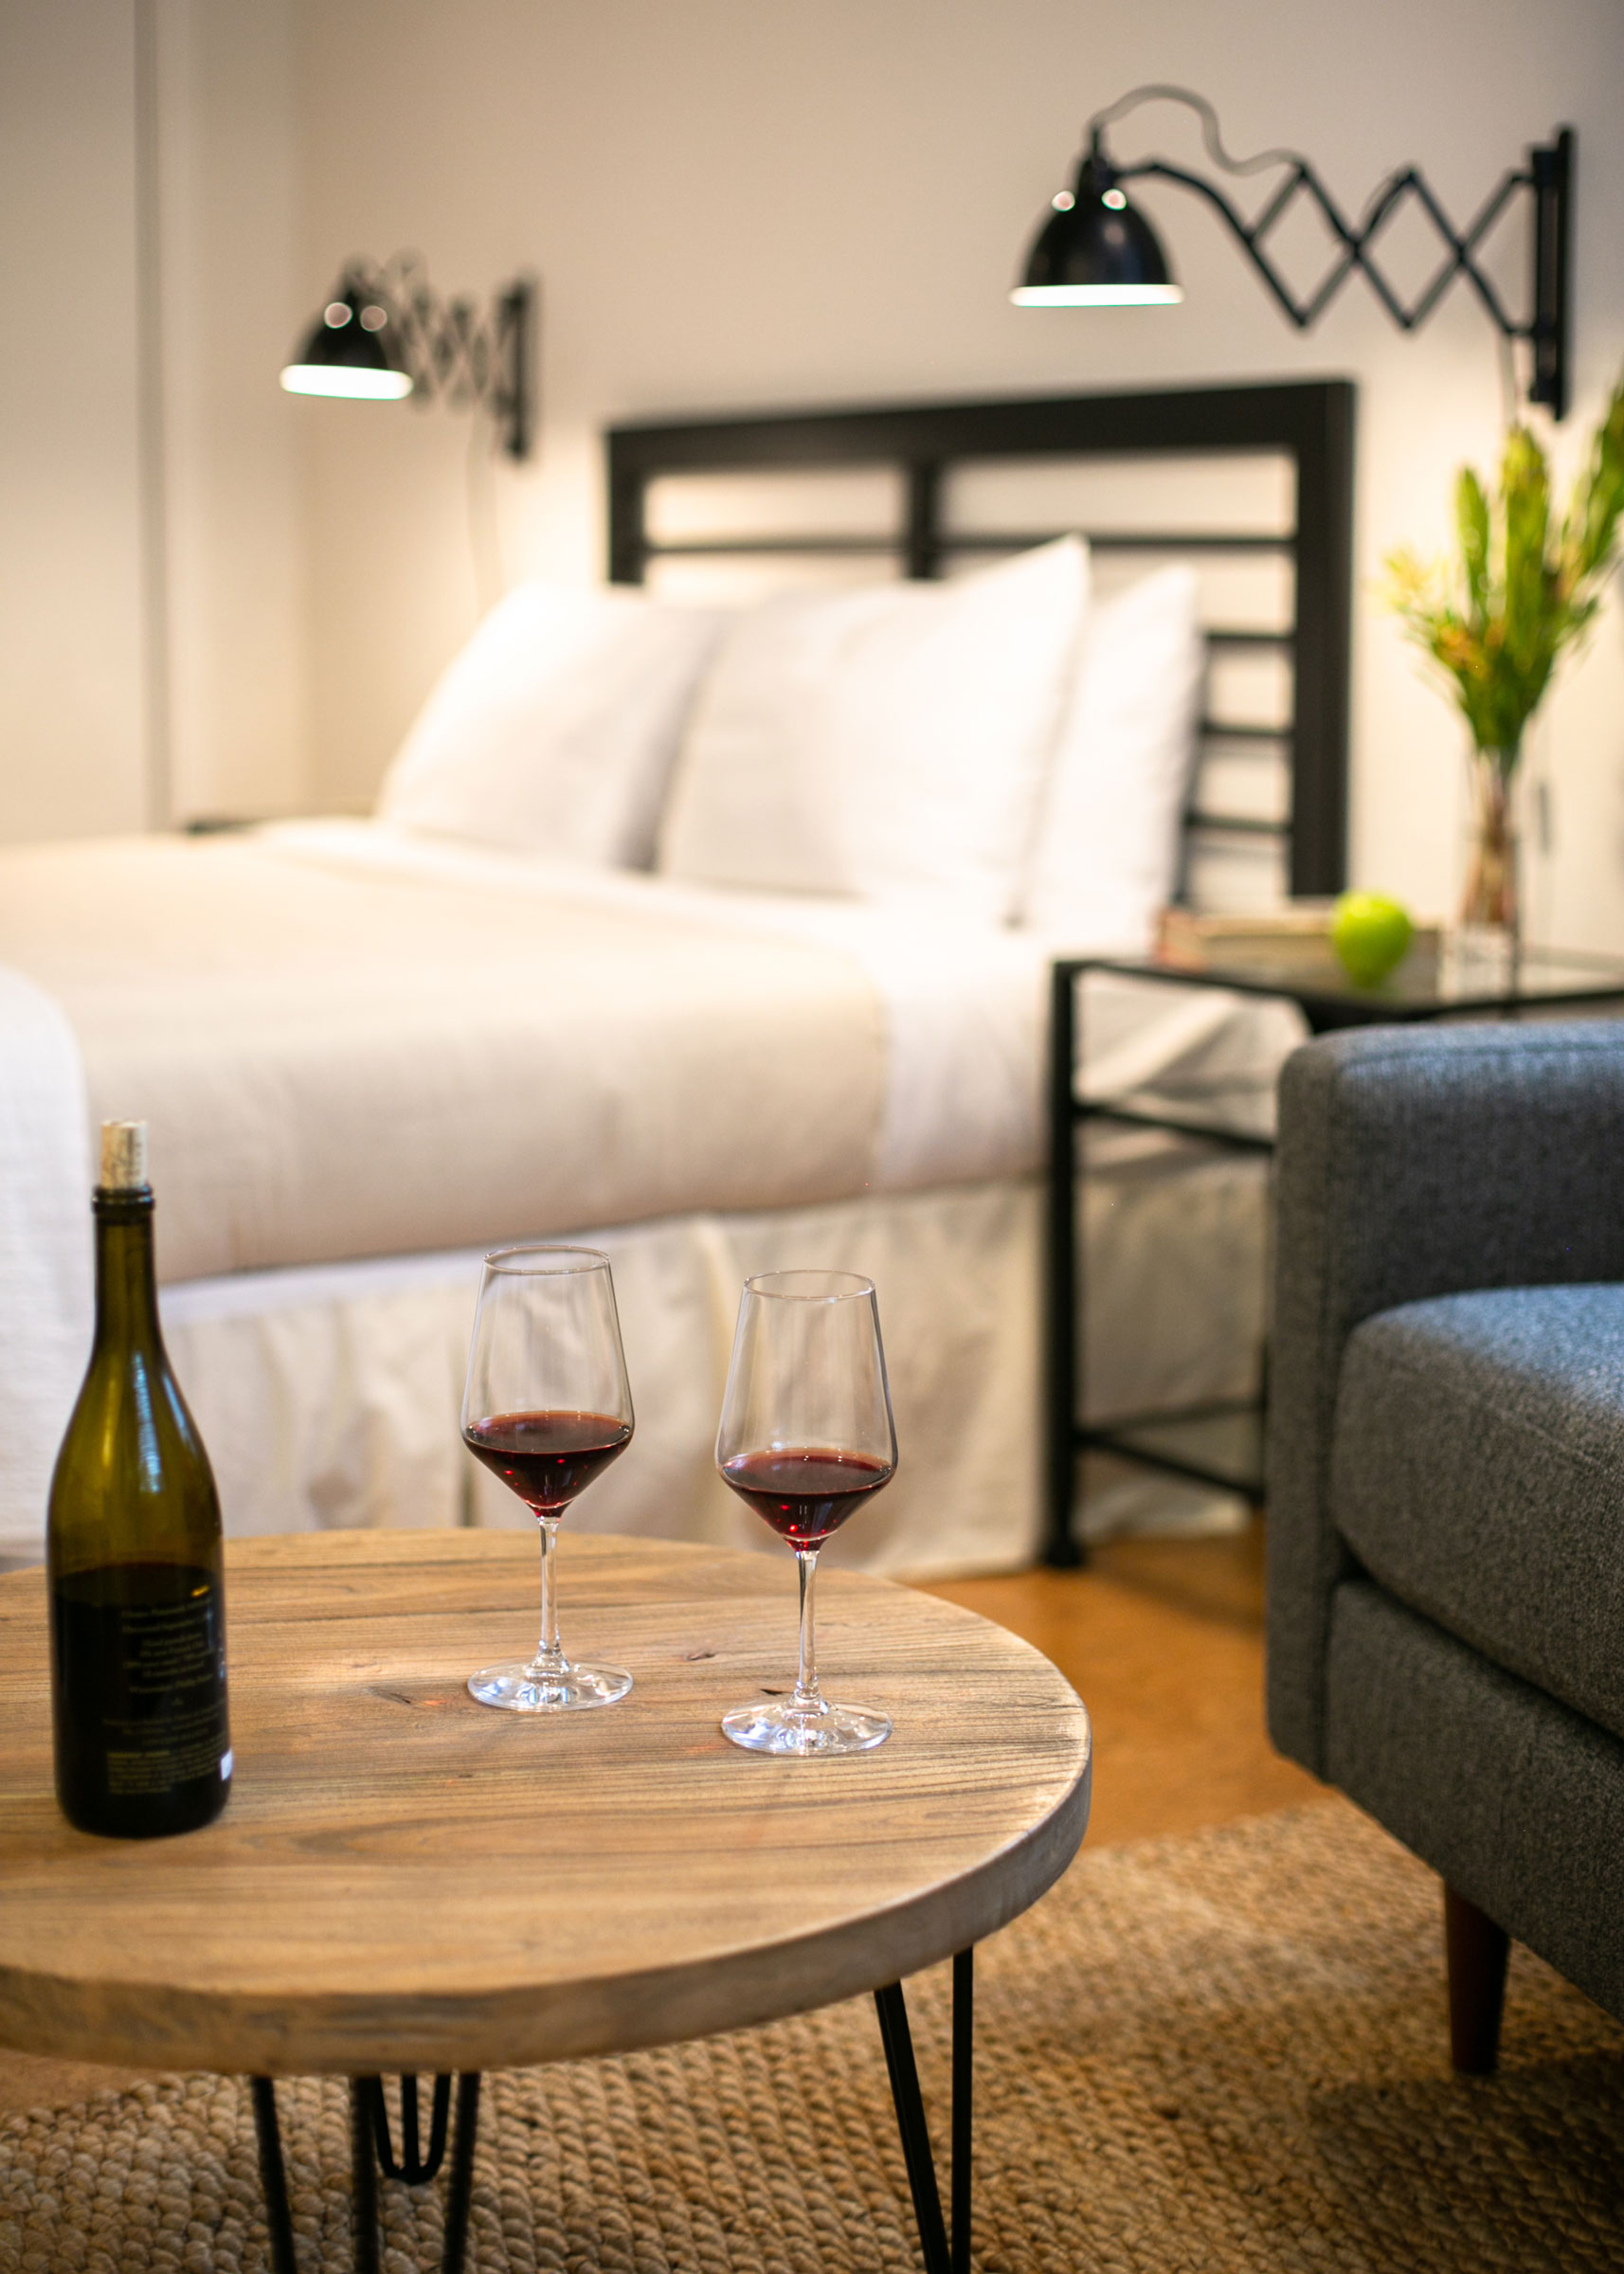 Two glasses of red wine await guests in room 104 at The Lodge at Glendeven Inn & Lodge